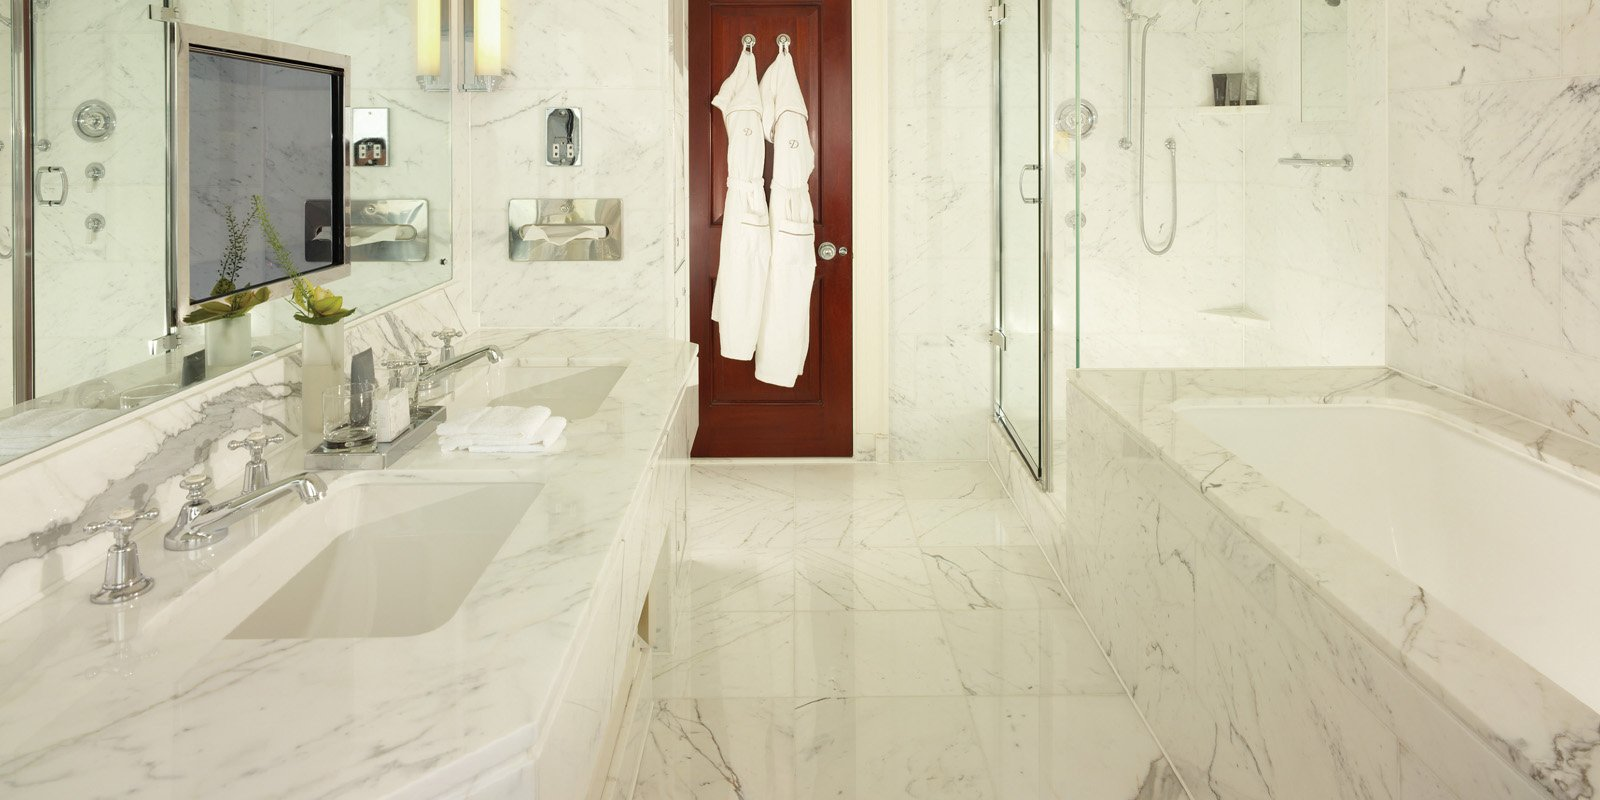 Most bathrooms enjoy natural light and have bathtubs that are specially imported and are some of the deepest, fastest-running in the world.